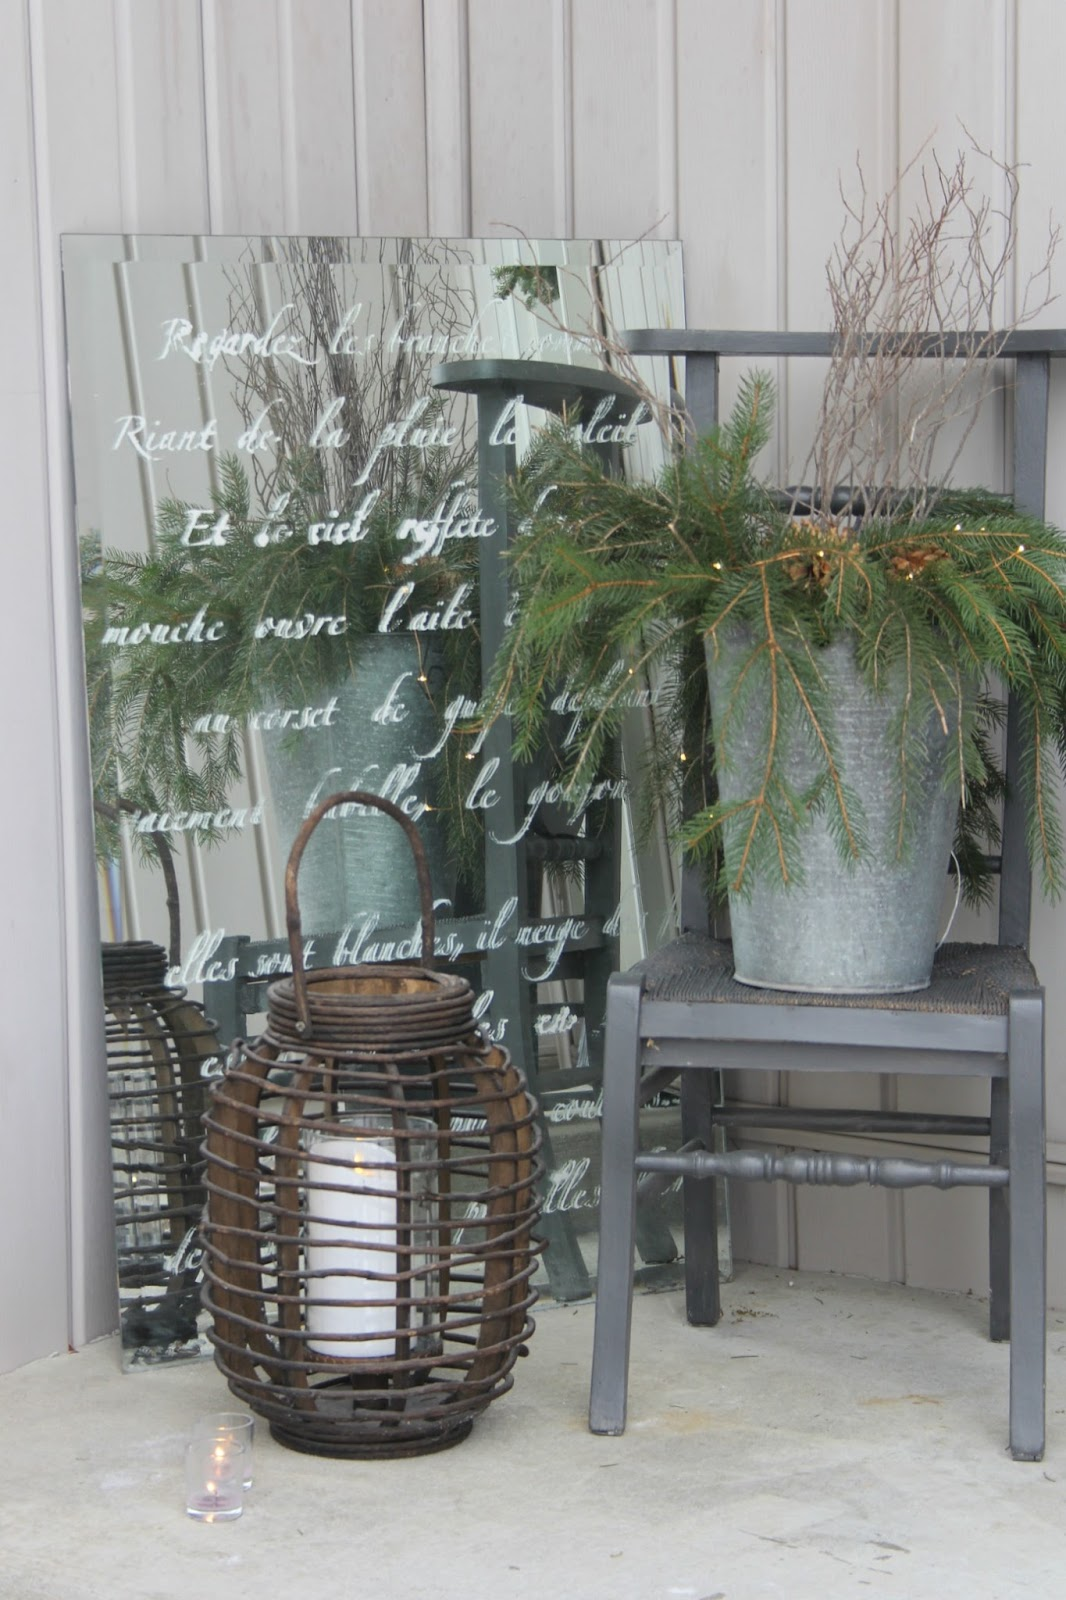 Holiday decor on front porch with stenciled mirror, lantern, and vintage chair with greenery